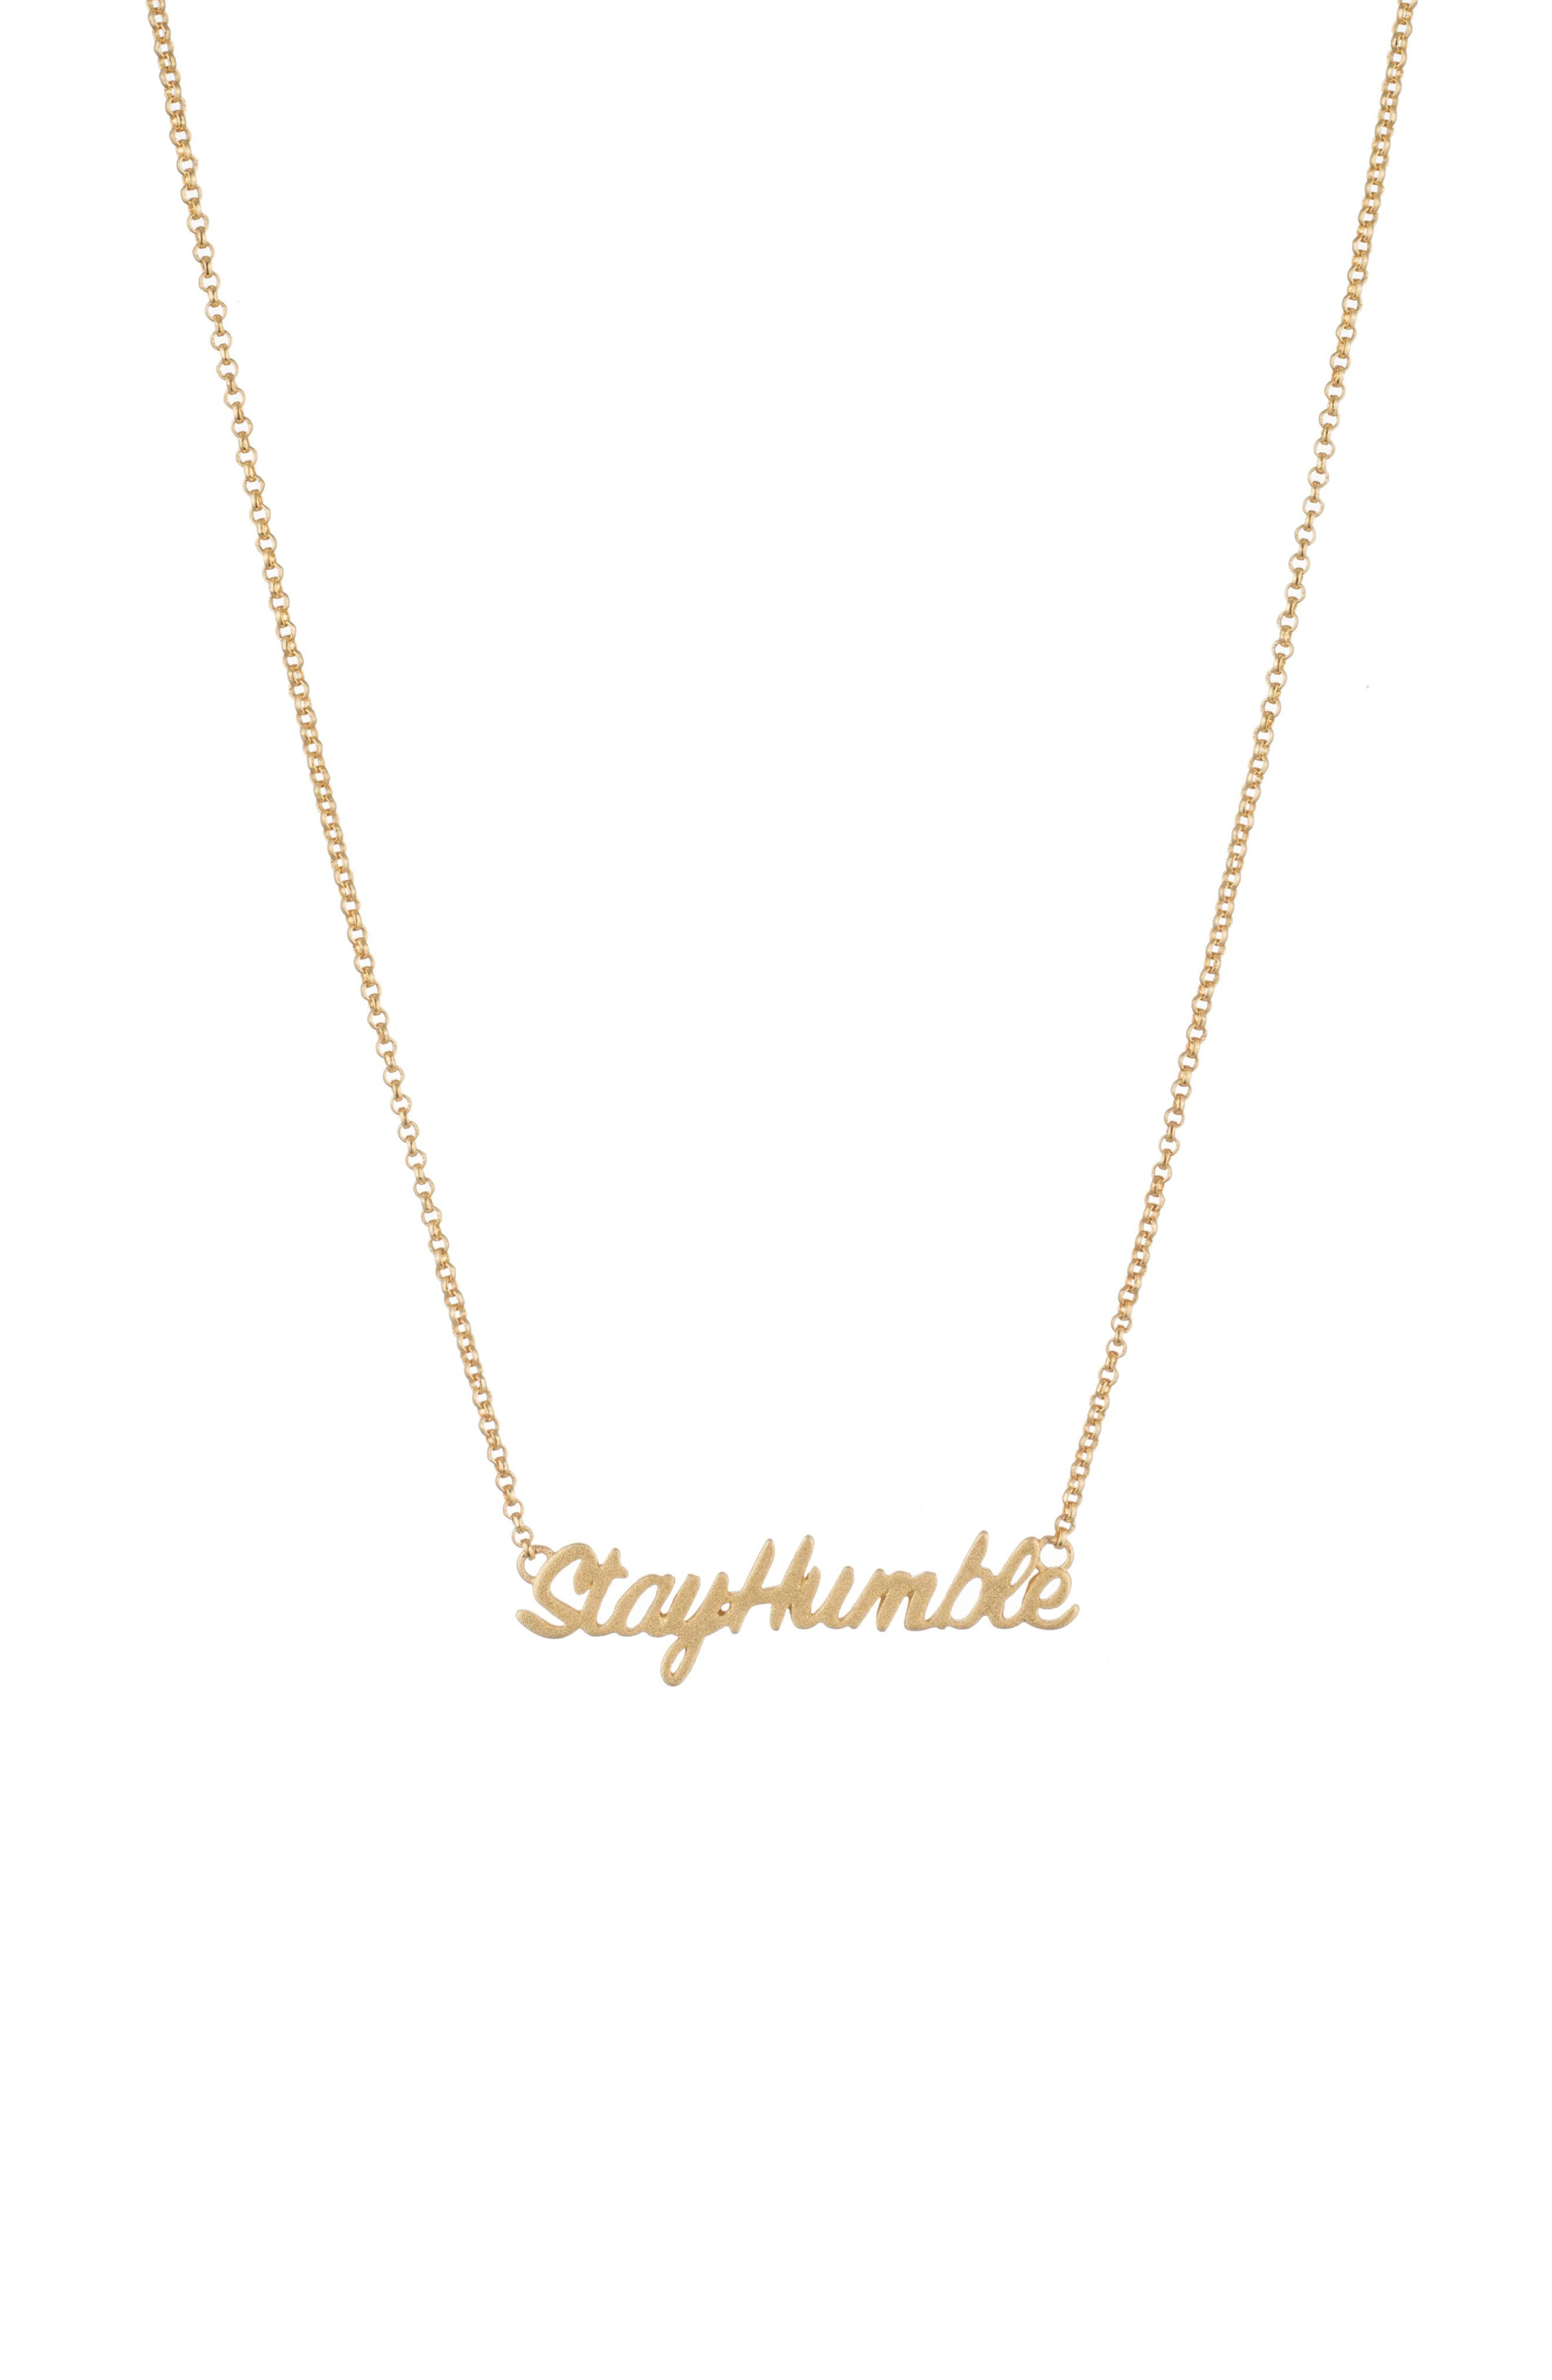 Stay Humble Necklace,                             Main thumbnail 1, color,                             Gold